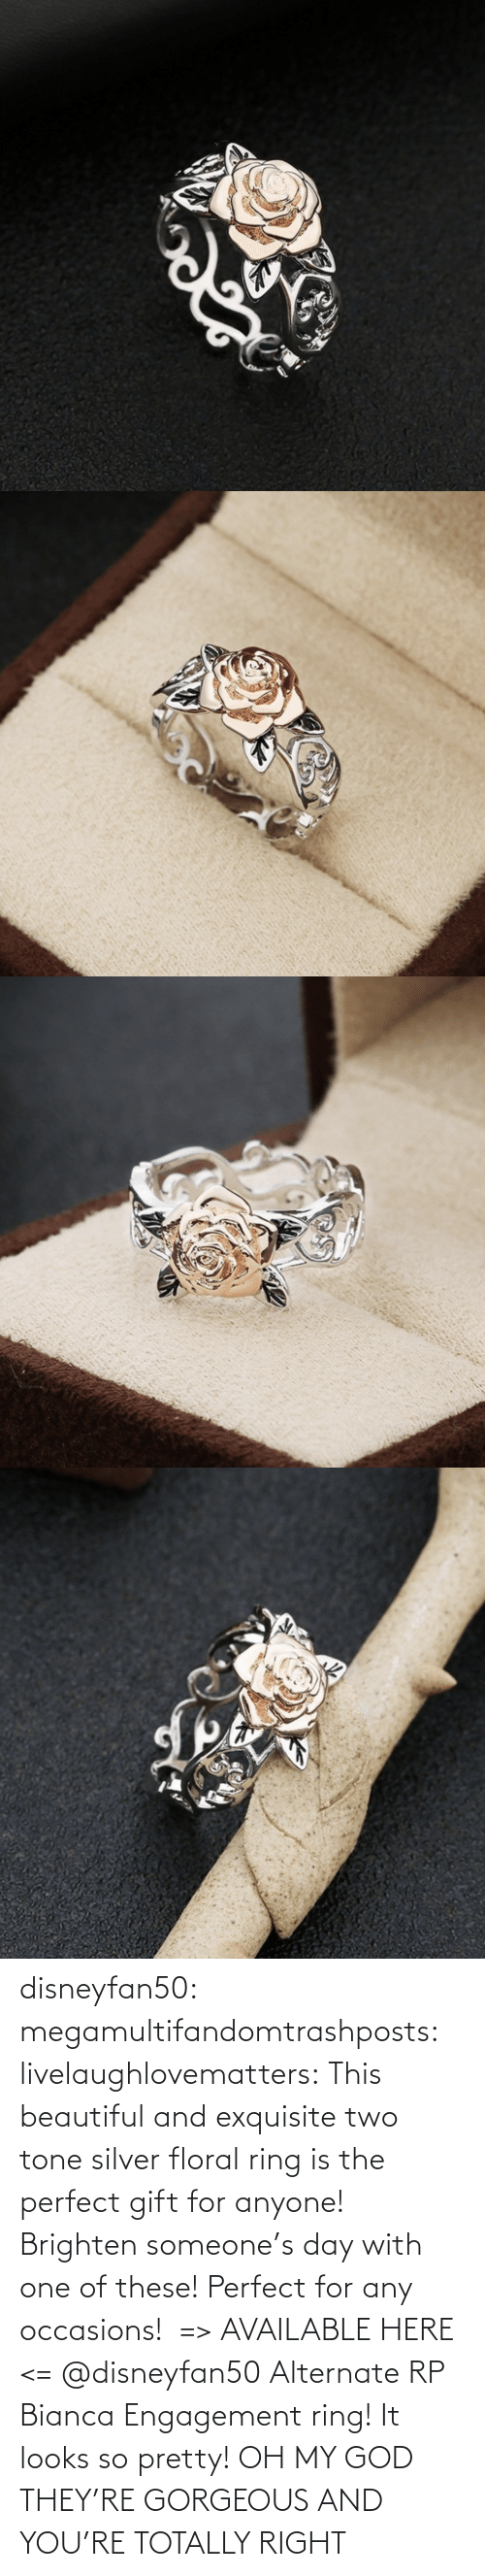 gif: disneyfan50: megamultifandomtrashposts:  livelaughlovematters:  This beautiful and exquisite two tone silver floral ring is the perfect gift for anyone! Brighten someone's day with one of these! Perfect for any occasions! => AVAILABLE HERE <=    @disneyfan50 Alternate RP Bianca Engagement ring! It looks so pretty!  OH MY GOD THEY'RE GORGEOUS AND YOU'RE TOTALLY RIGHT